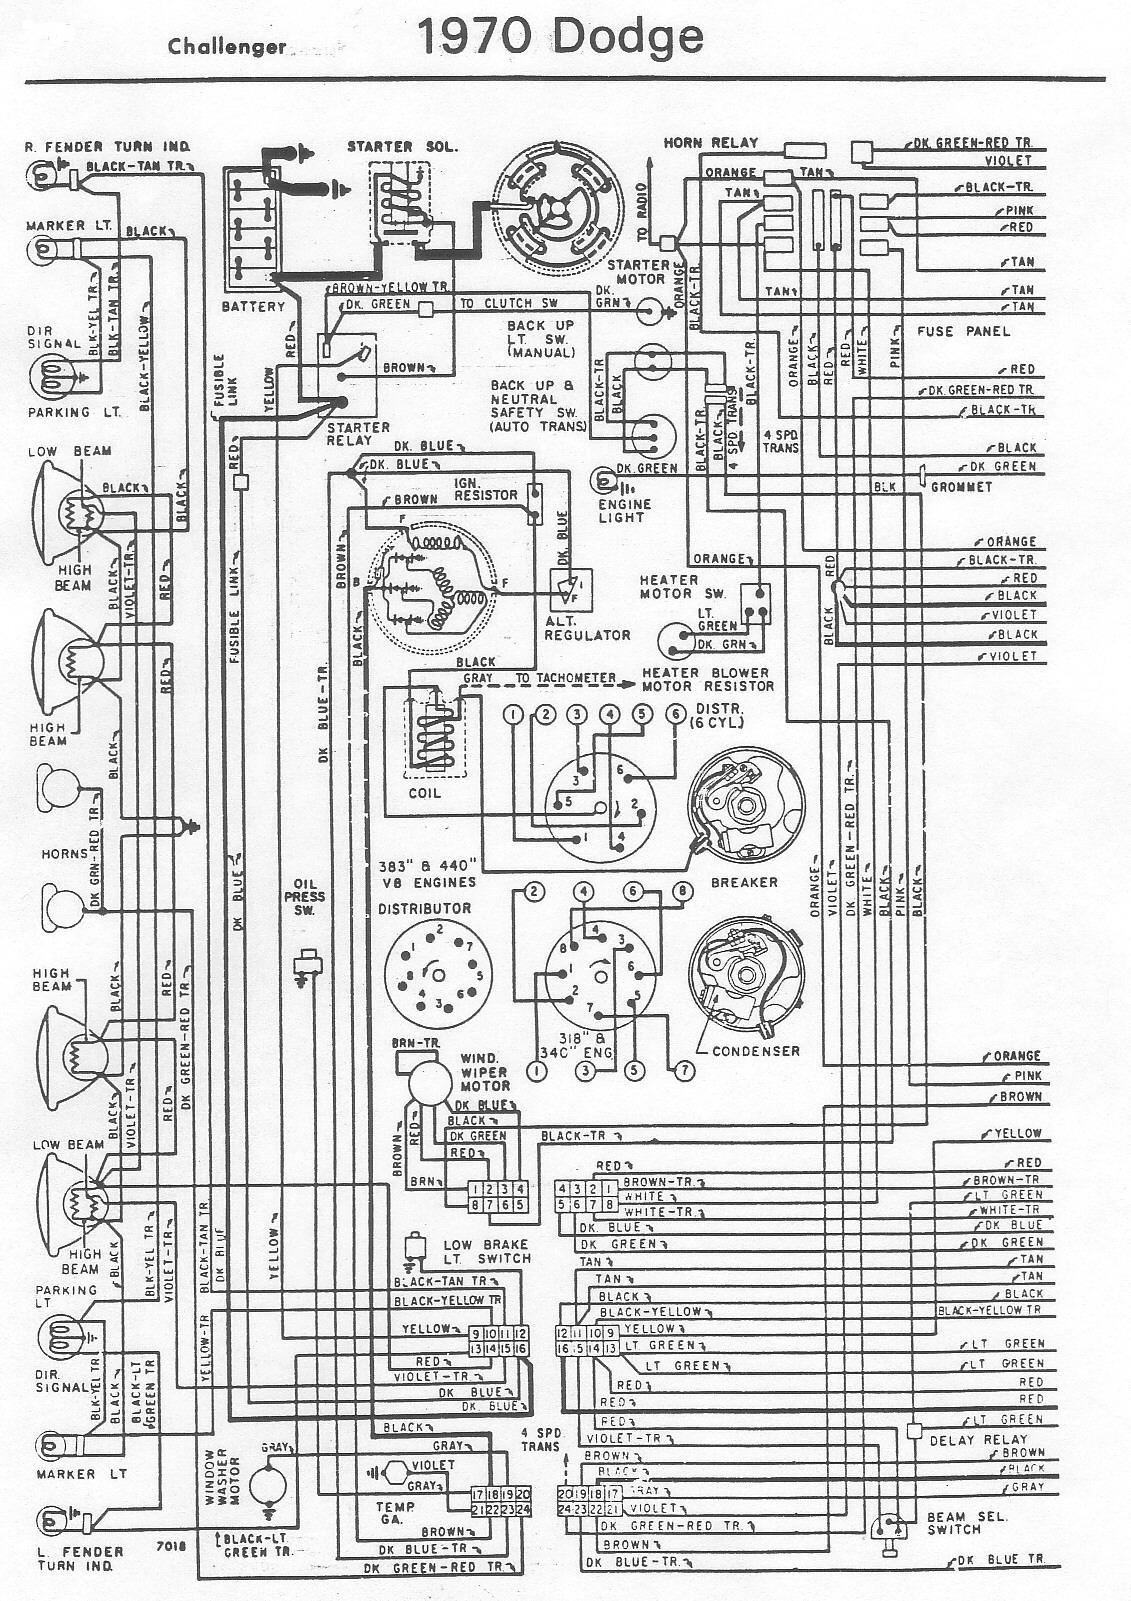 1970 chevelle engine wiring 1970 automotive wiring diagrams description gn37 chevelle engine wiring